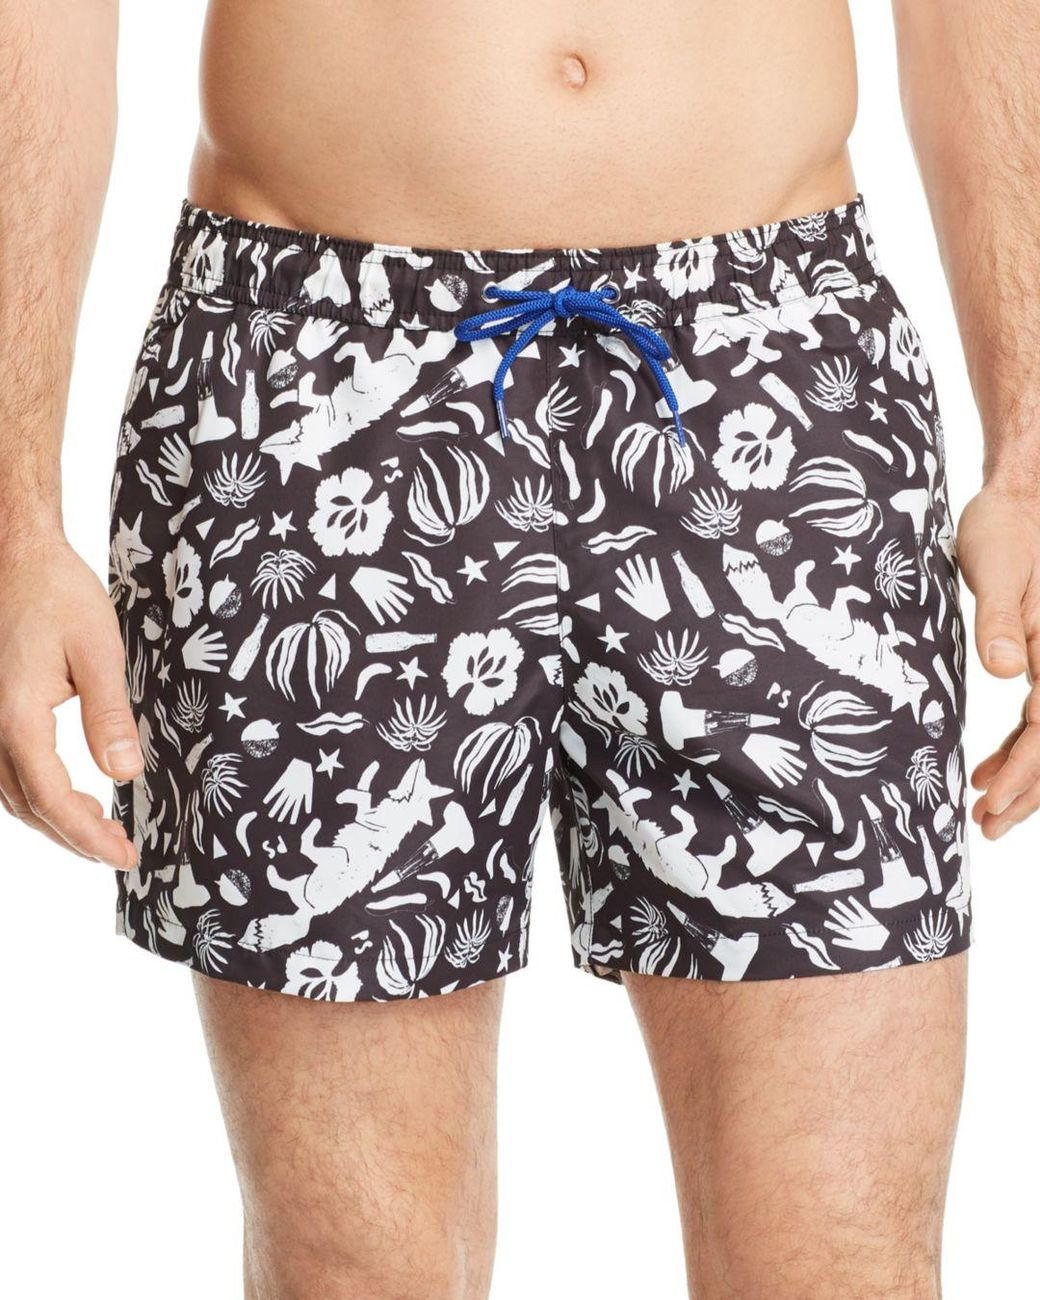 cc5b62cfe1 Lyst - PS by Paul Smith Classic Fox-print Swim Shorts in Black for Men